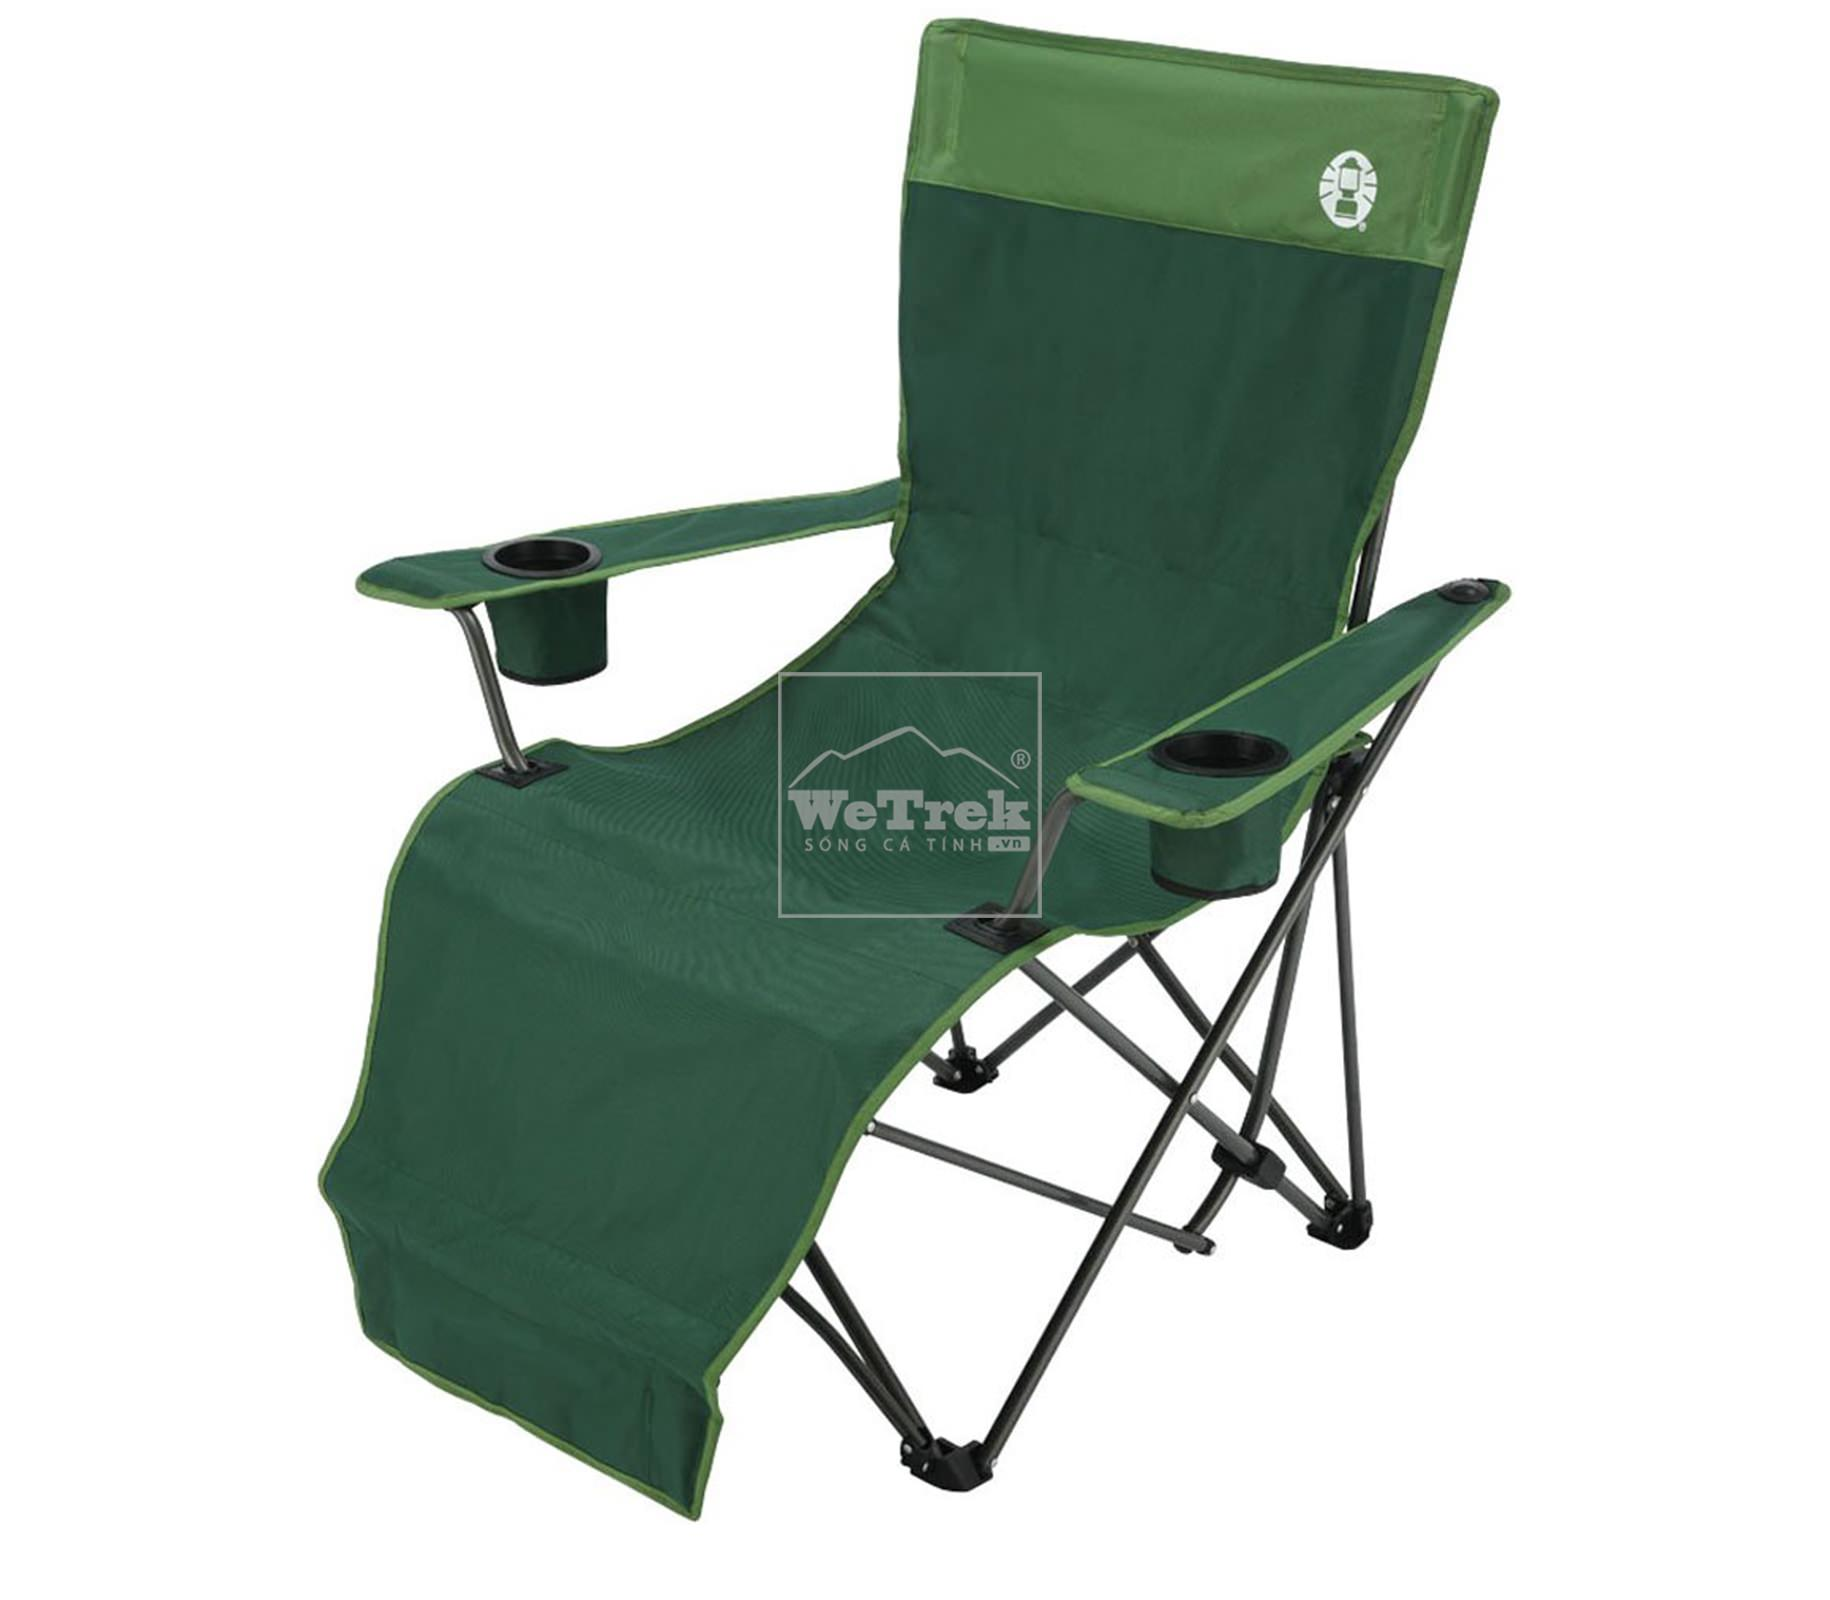 Ghe-gap-Coleman-Easy-Lift-Chair-Steel-Green-2000010499-7460_HasThumb.jpg